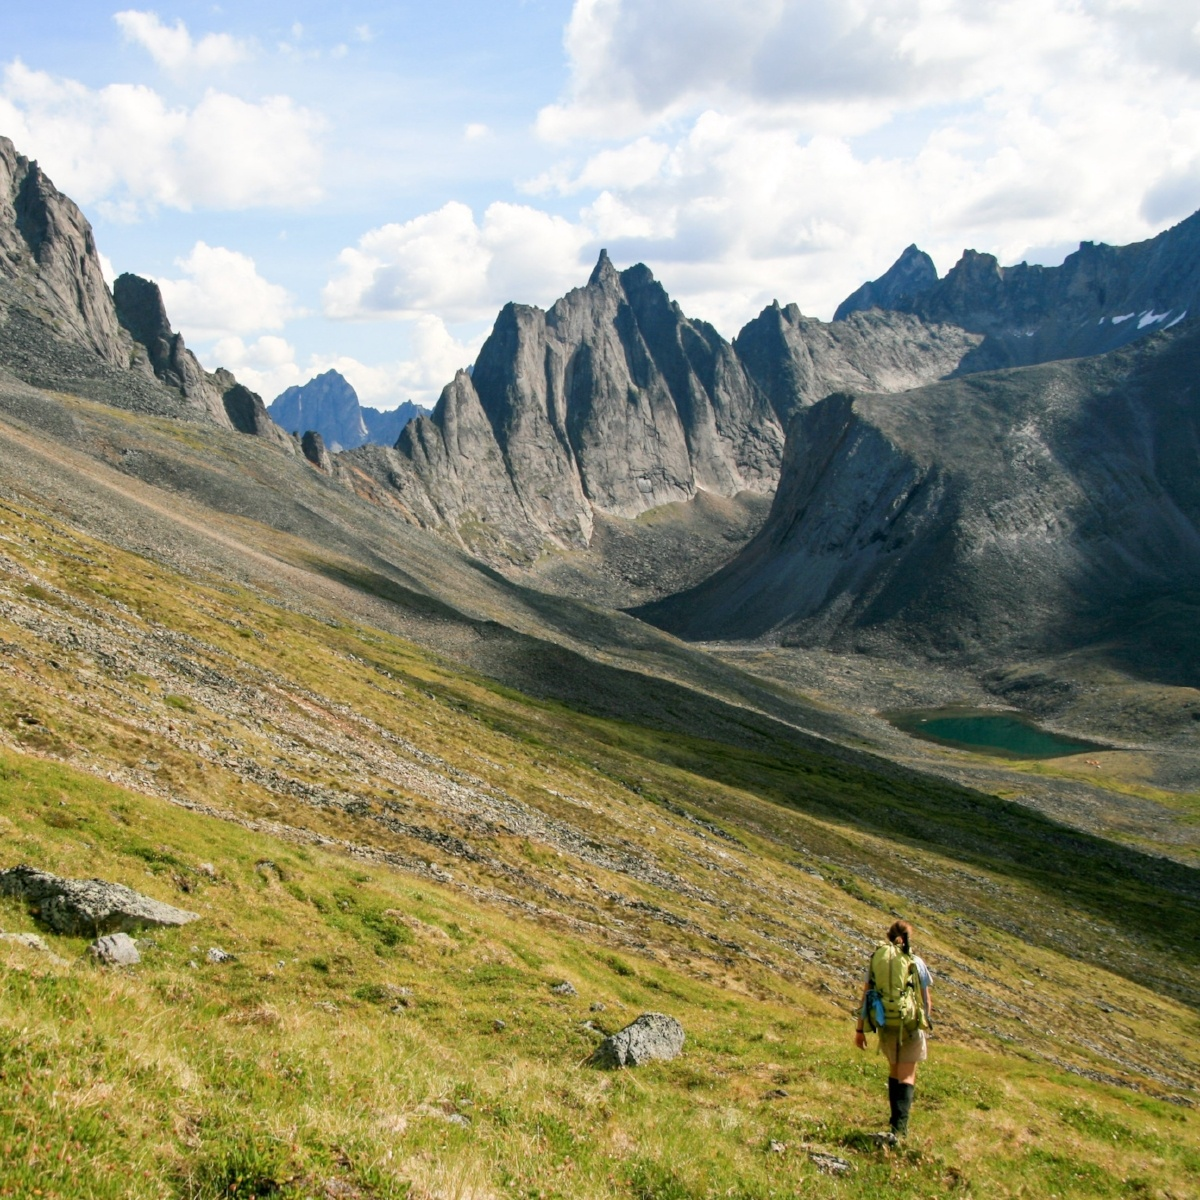 A hiker walks across the side of a valley with steep mountains in the background